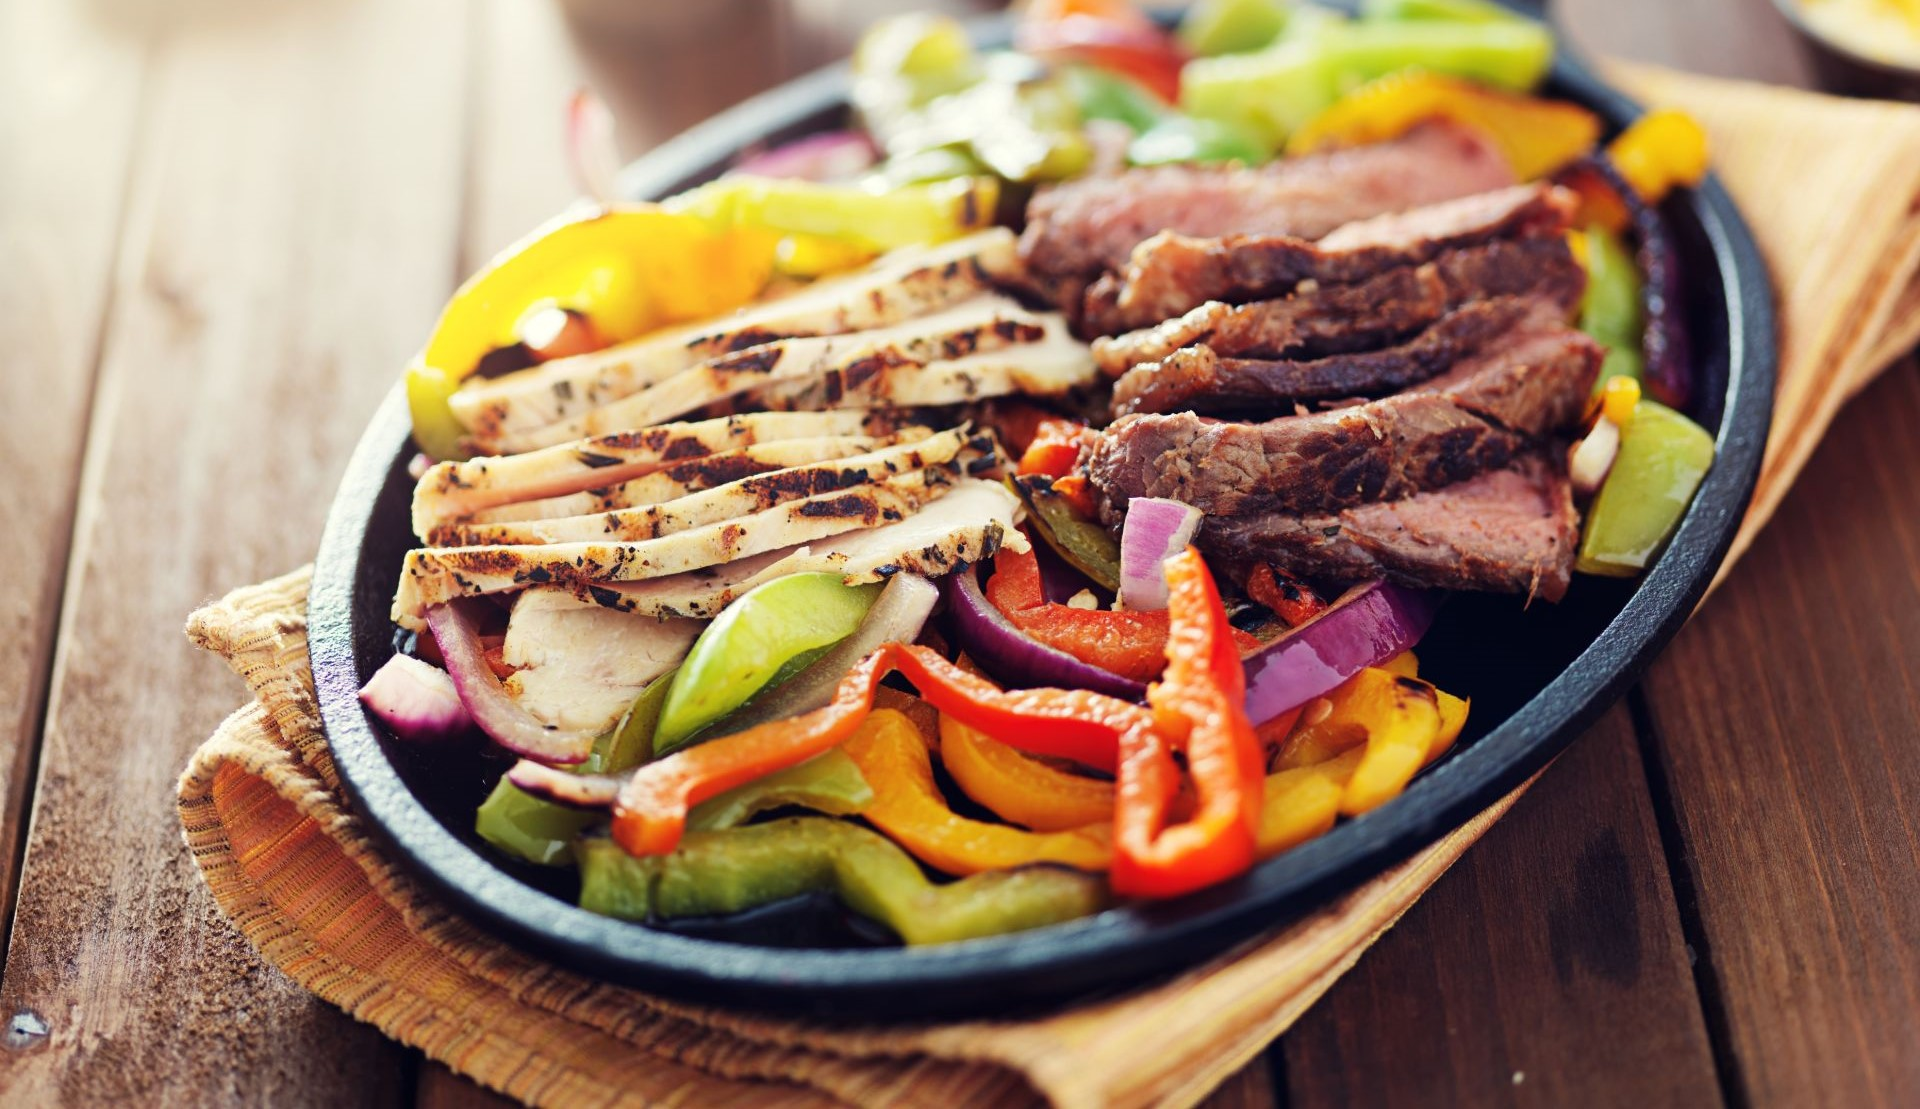 Fajitas with steak and chicken on rustic wooden table